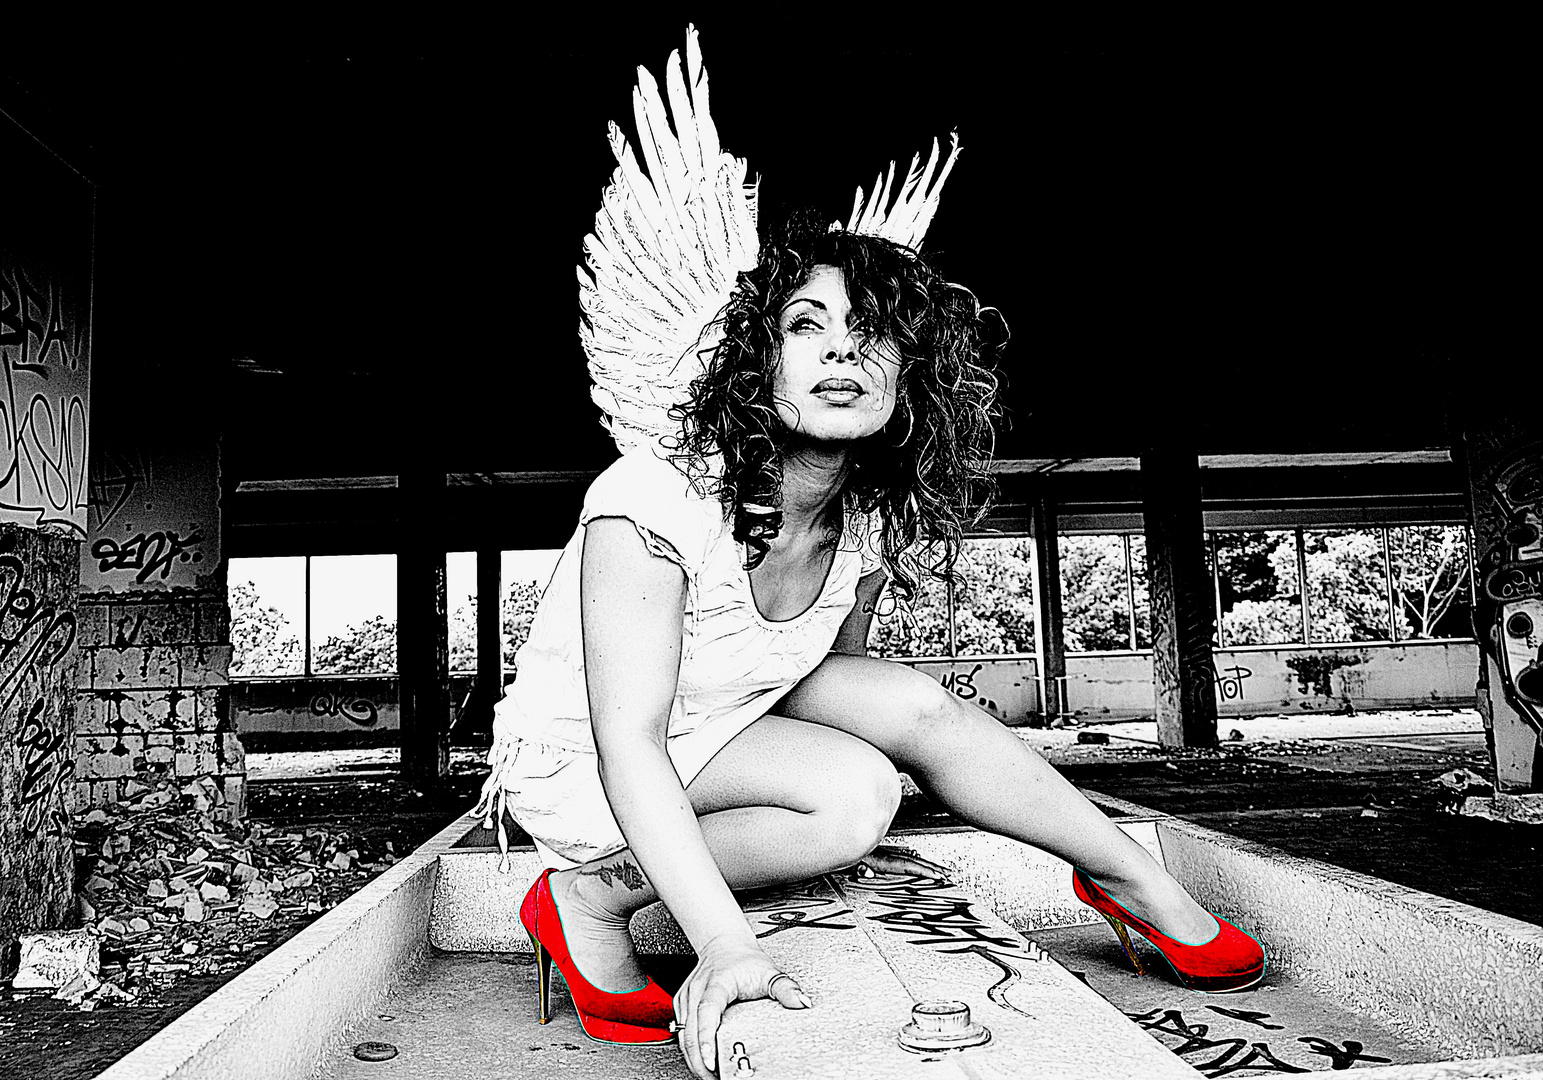 Angel in Lost Place